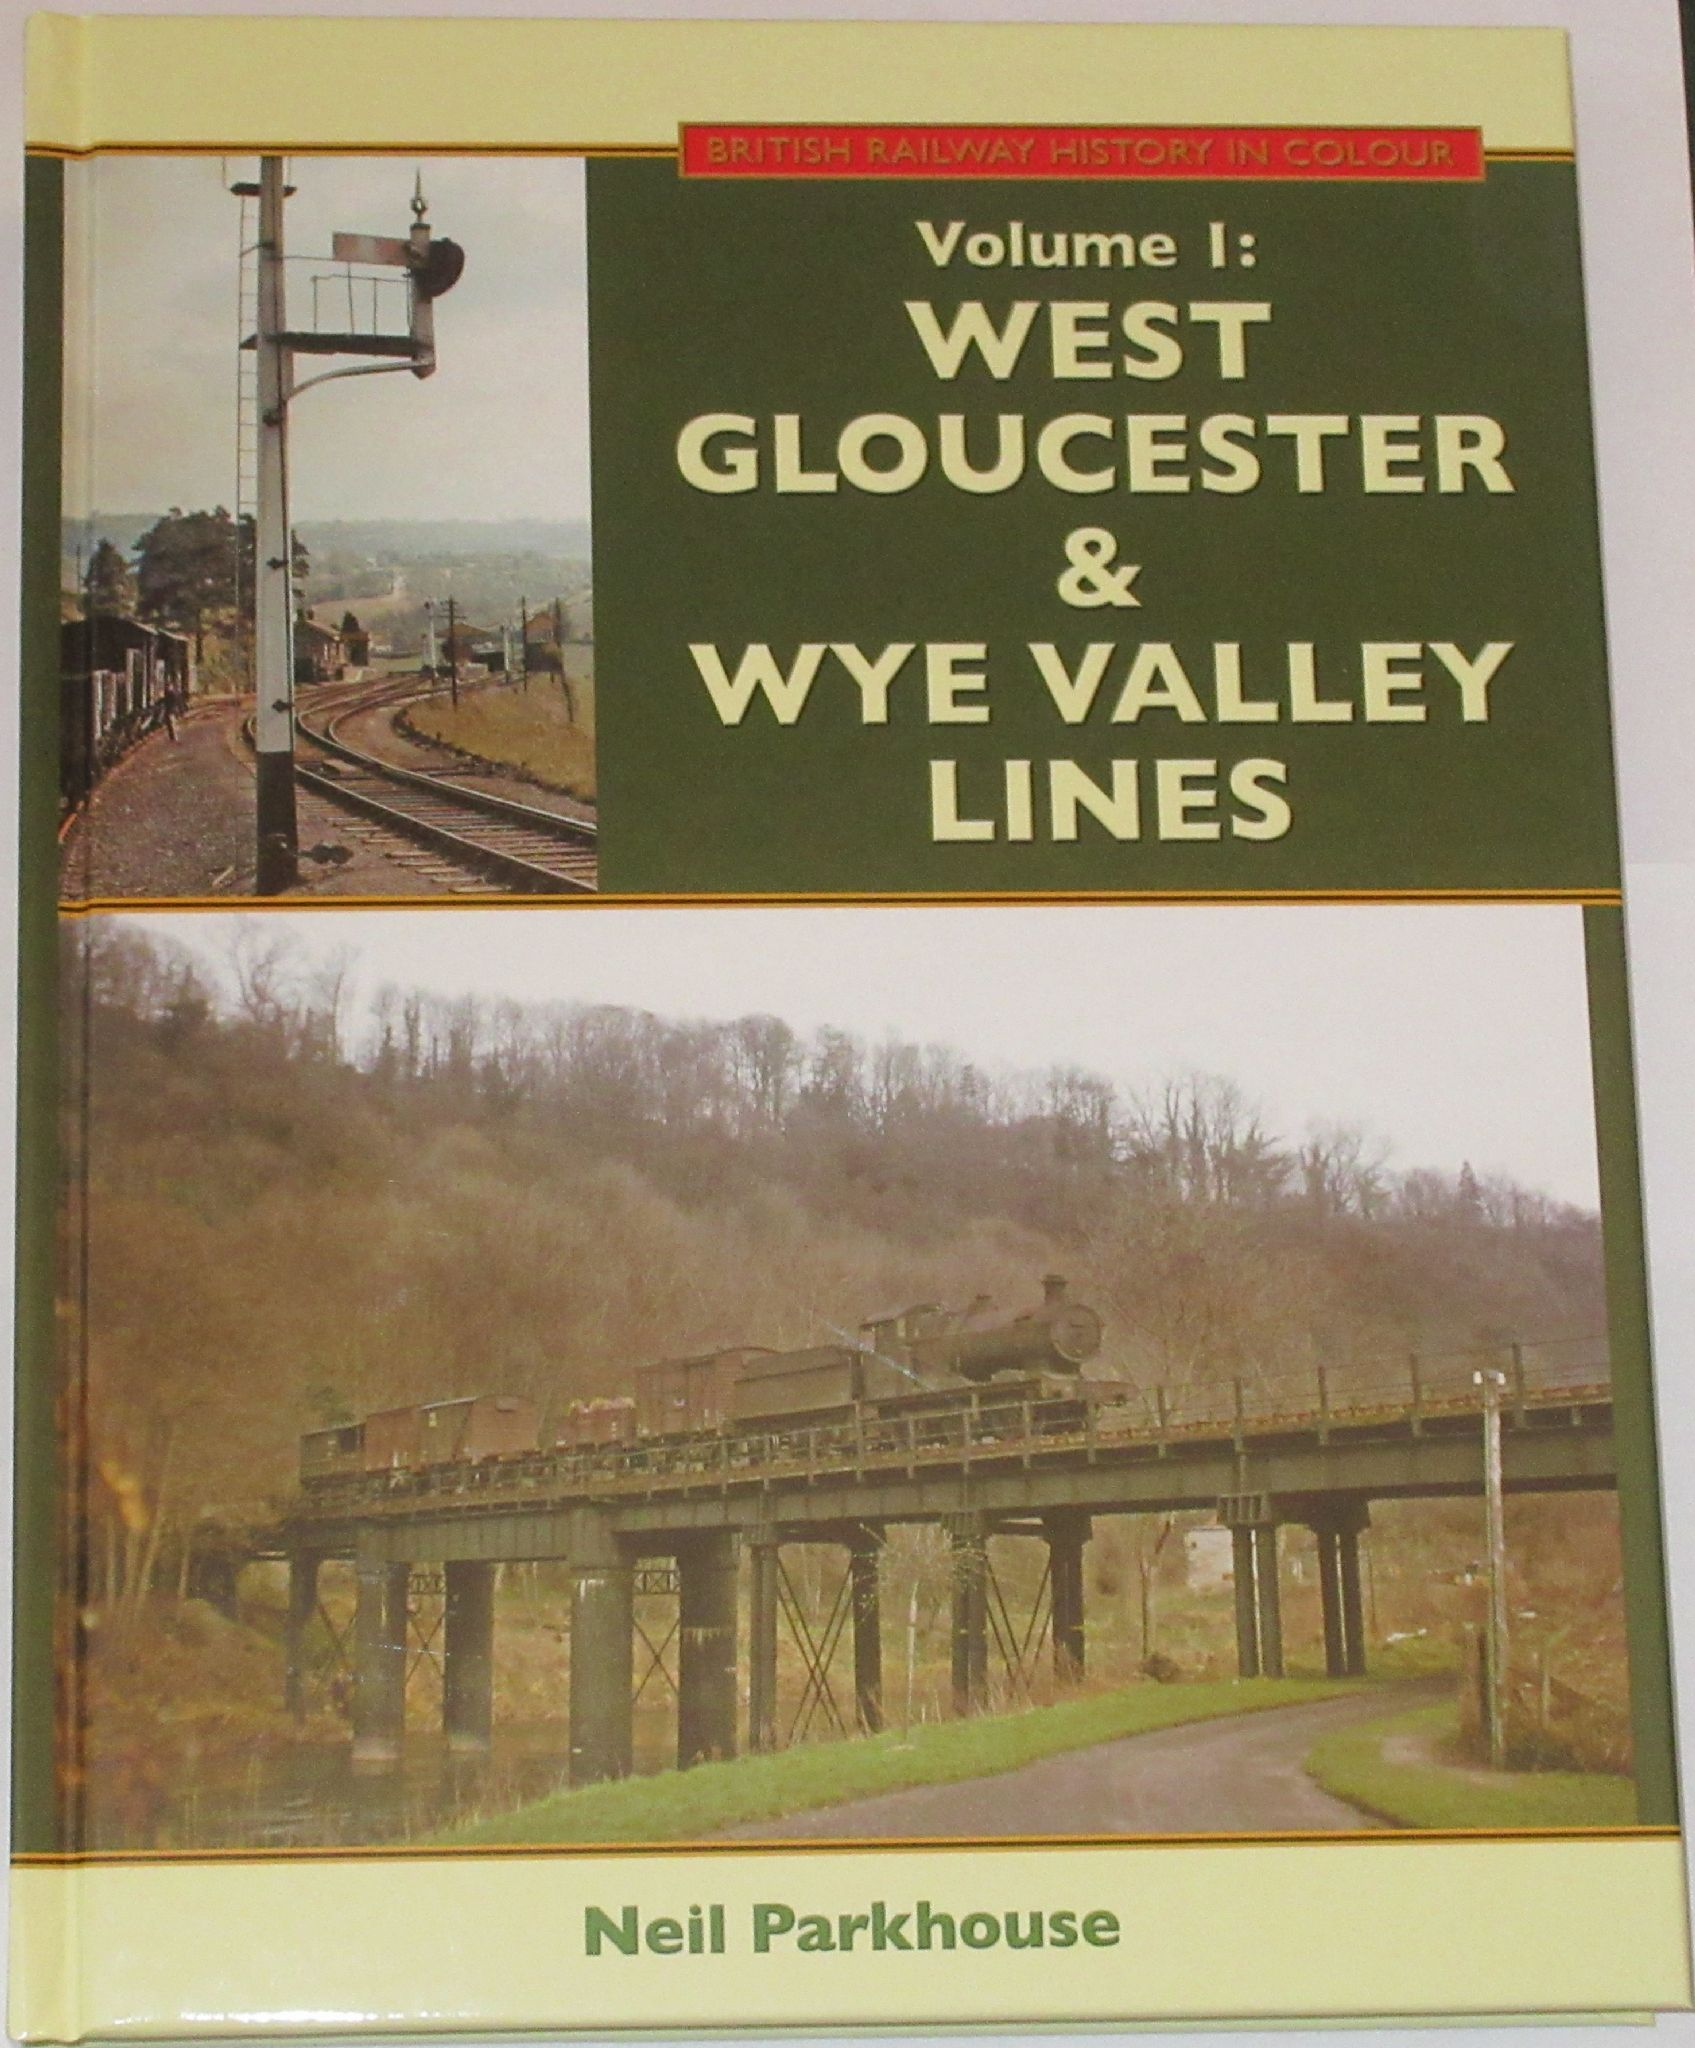 British Railway History in Colour Volume 1: West Gloucester and Wye Valley  Lines, by Neil Parkhouse